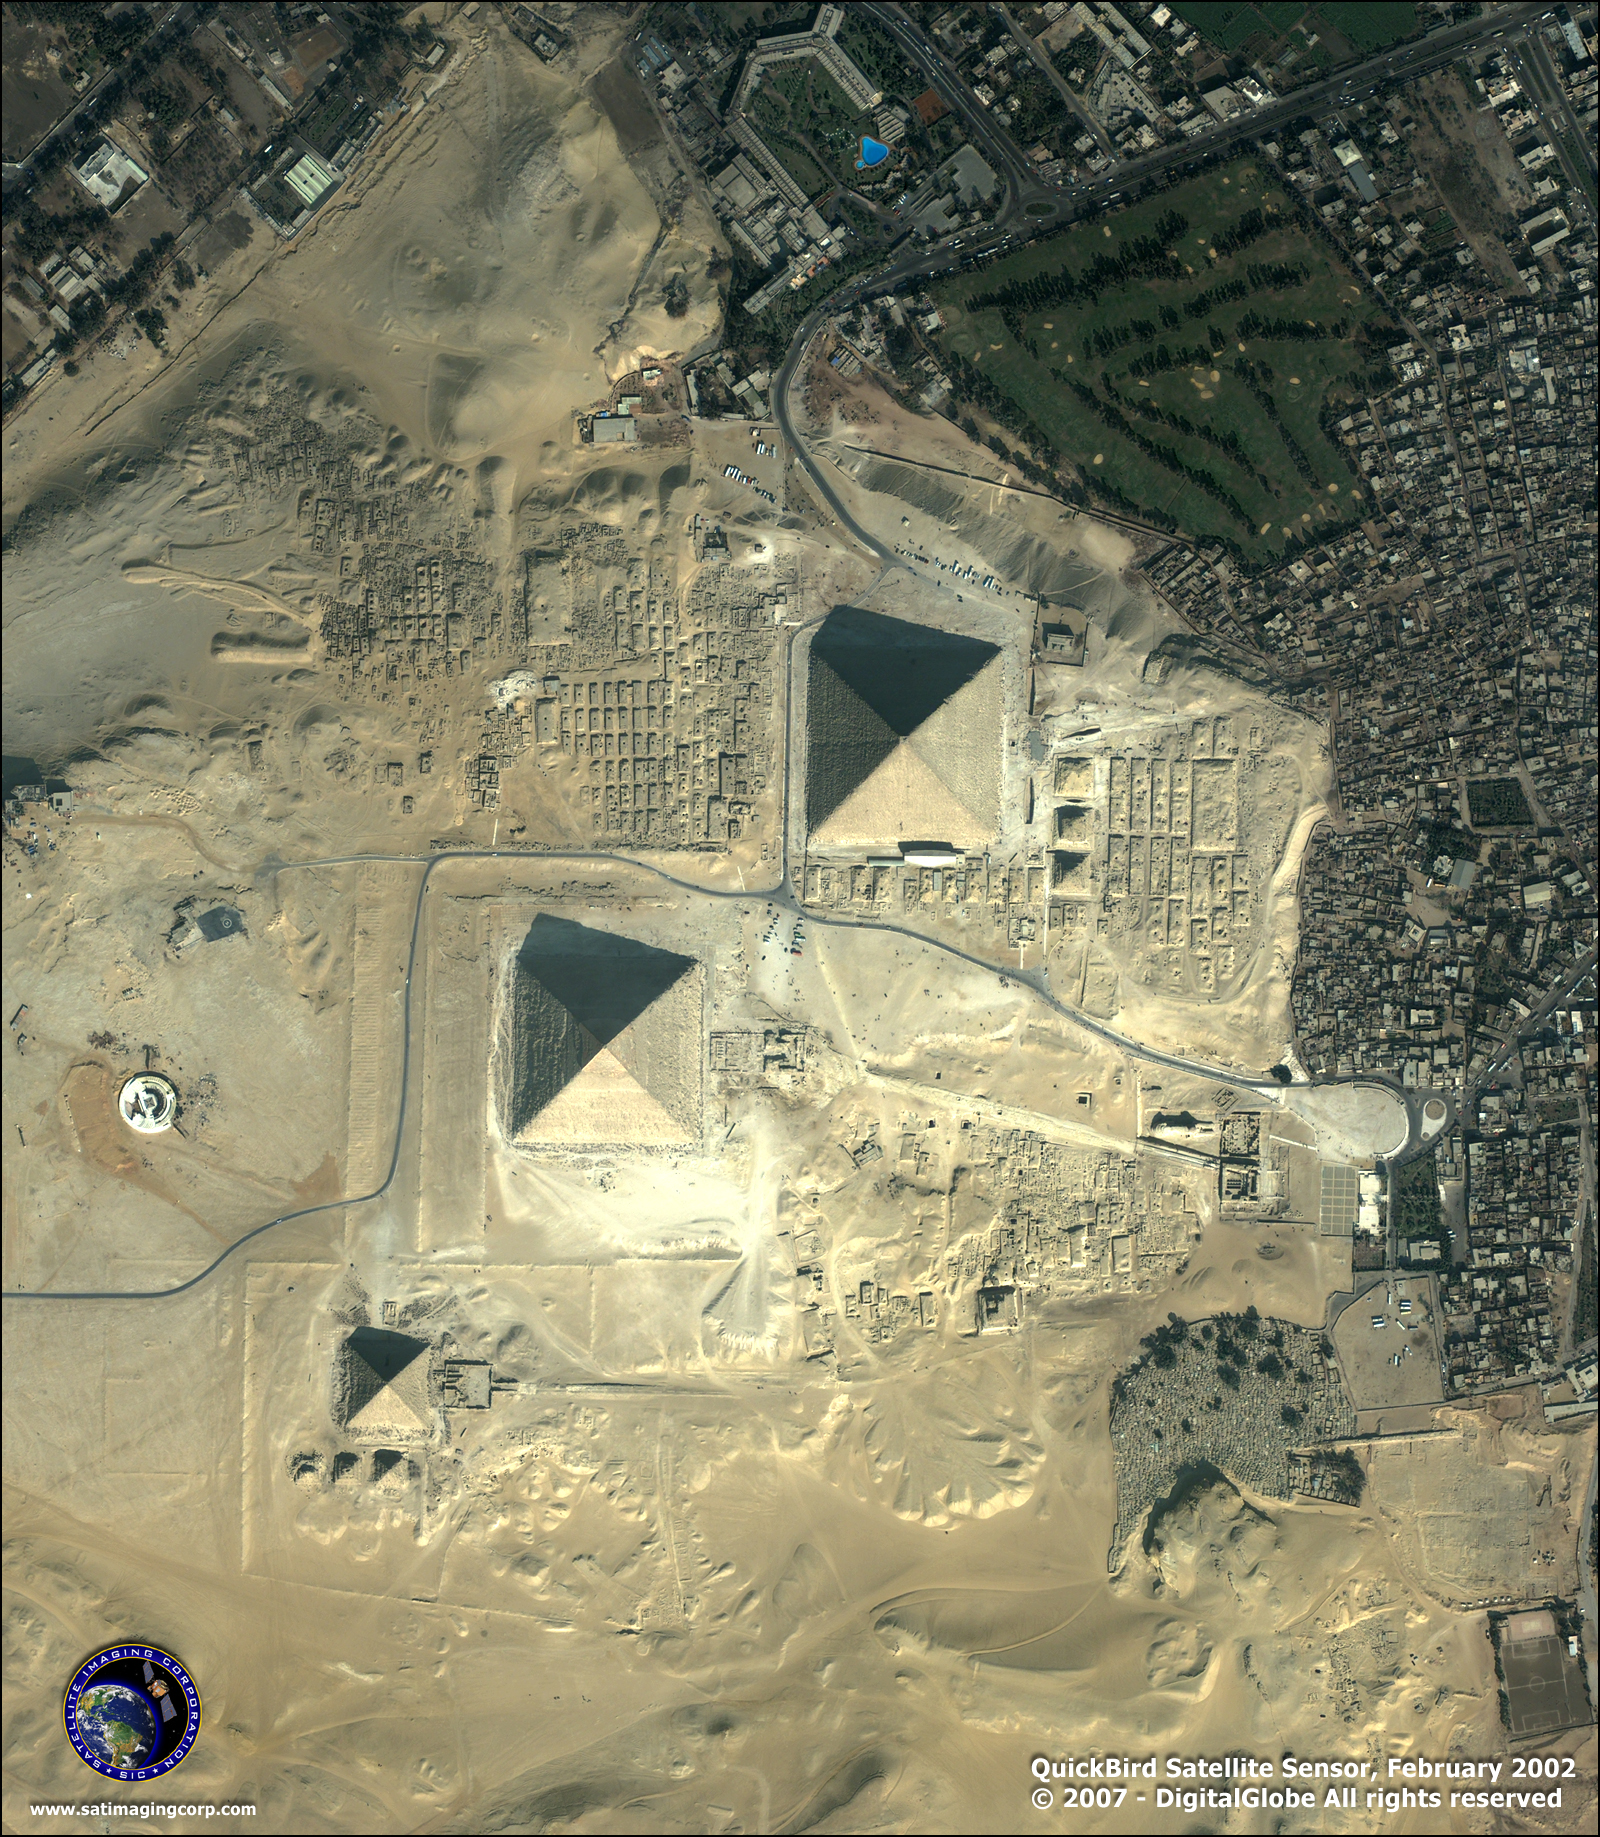 Pyramids In Egypt Map.Quickbird Satellite Image Of The Giza Pyramids Satellite Imaging Corp